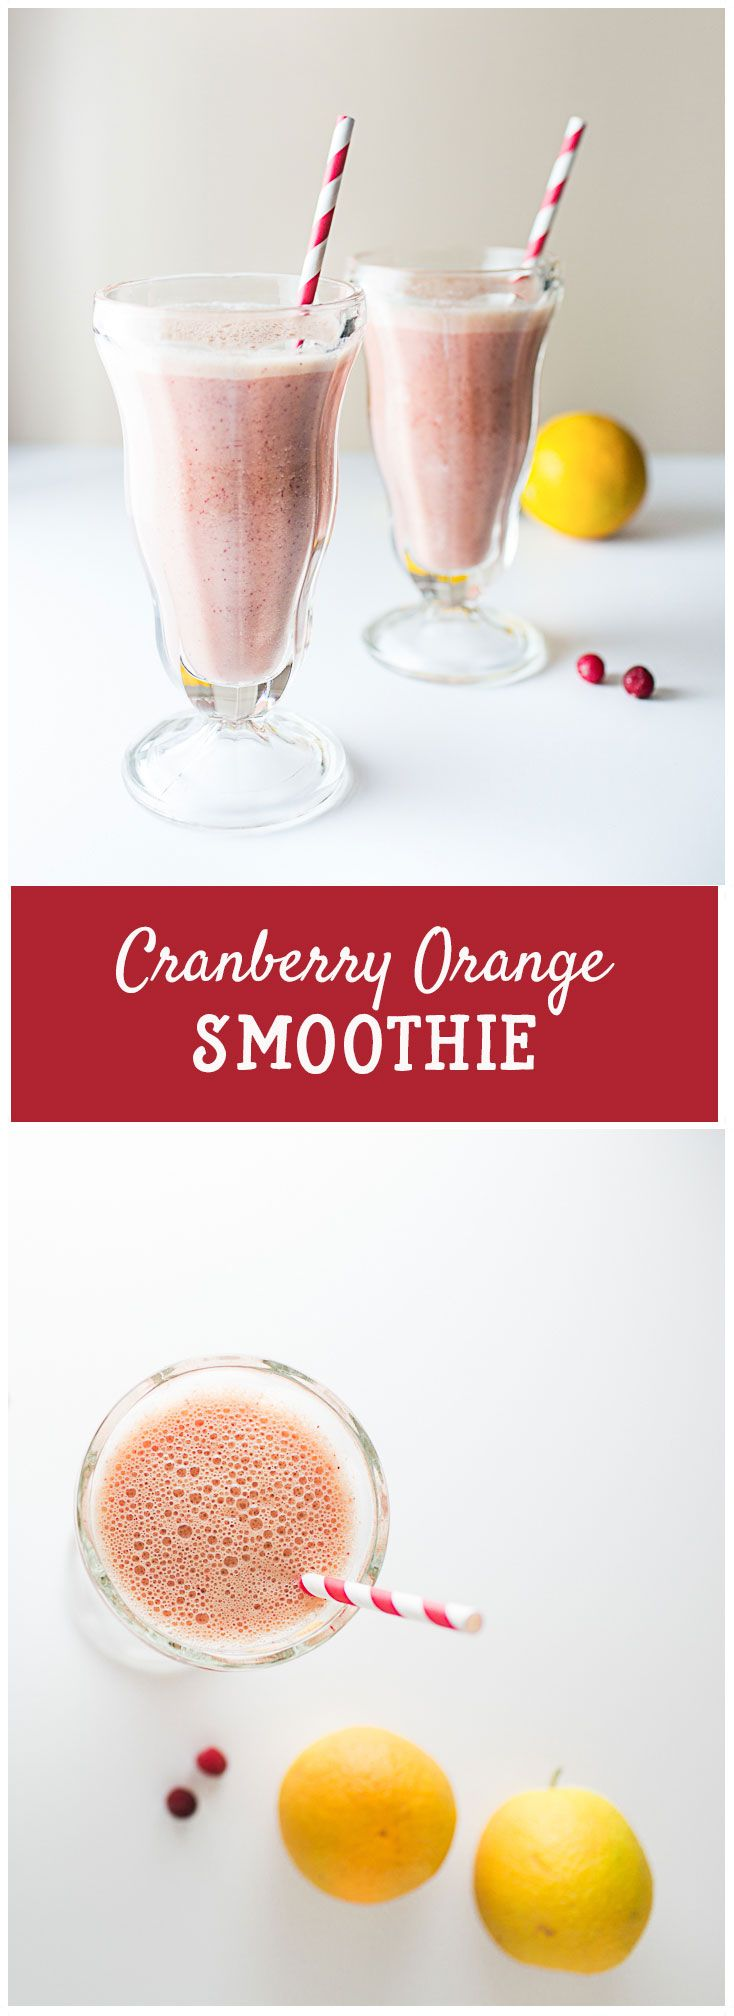 Cranberry Orange Smoothie!